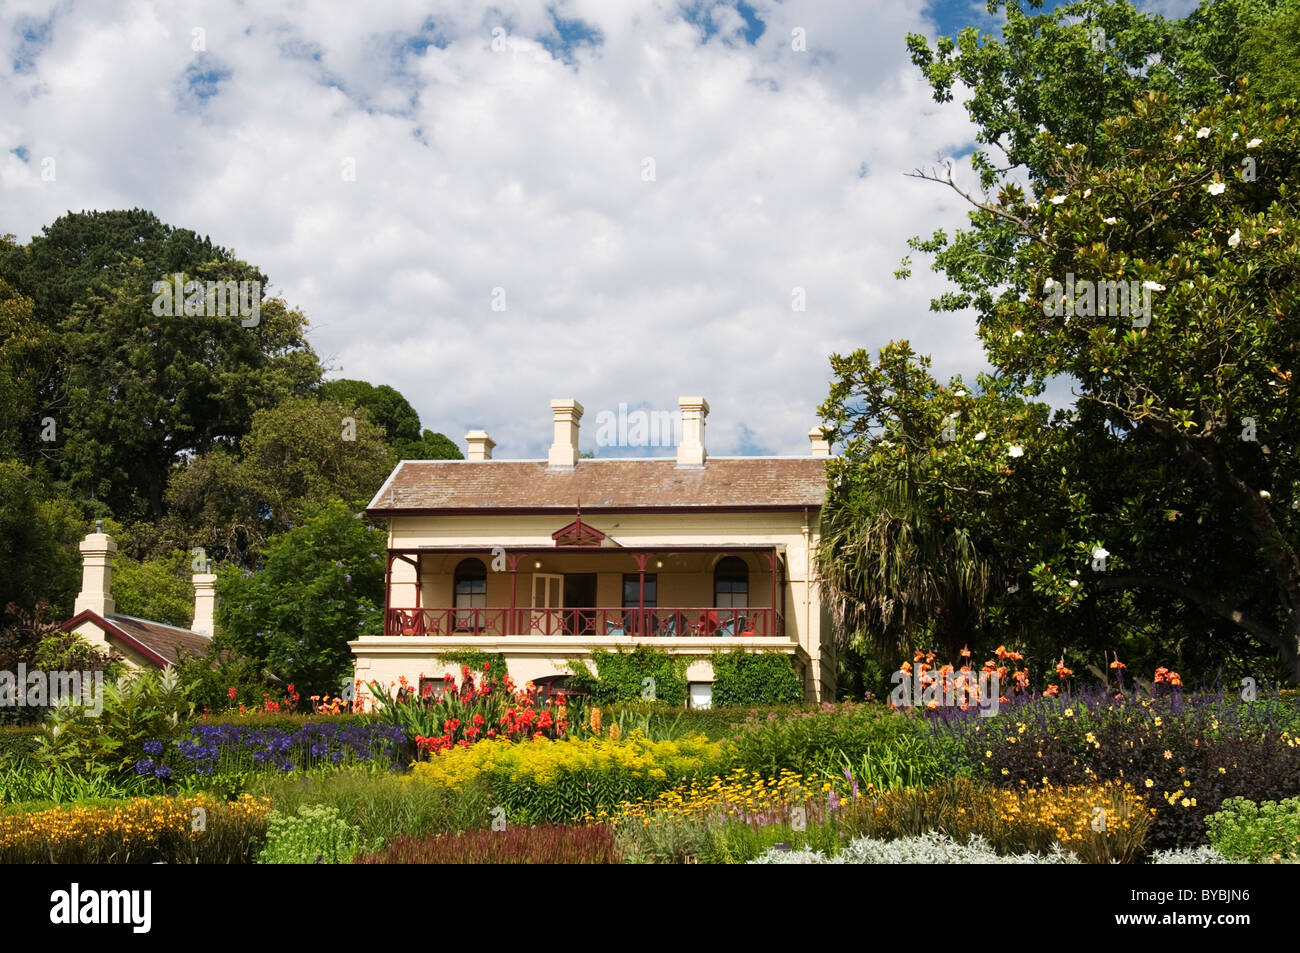 Gardens House The Official Residence At The Royal Botanic Gardens Stock Photo Royalty Free